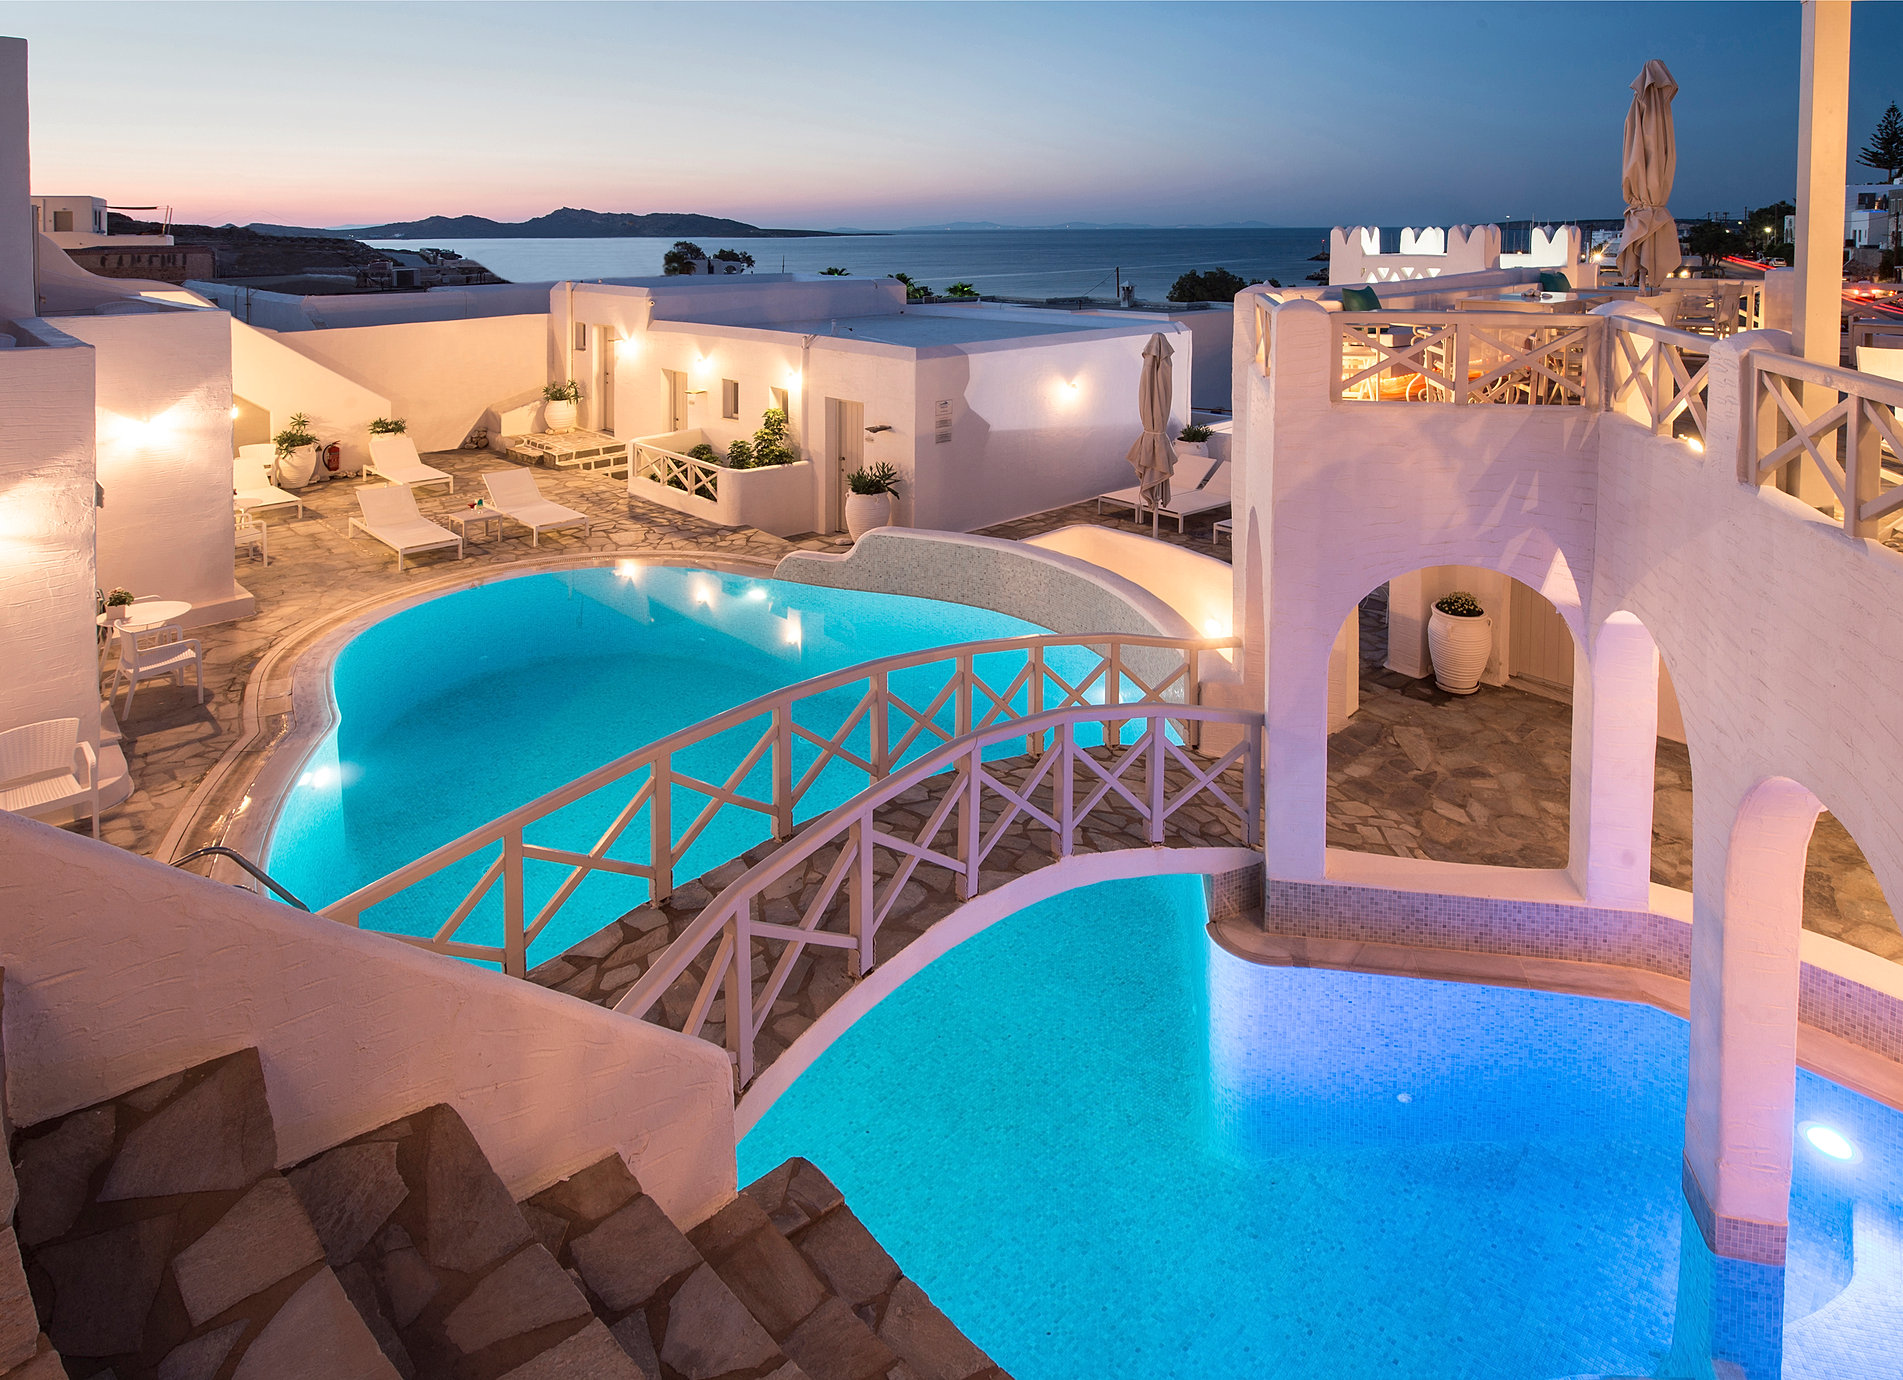 Naoussa paros boutique hotel kanale 39 s rooms suites for Boutique hotel paros